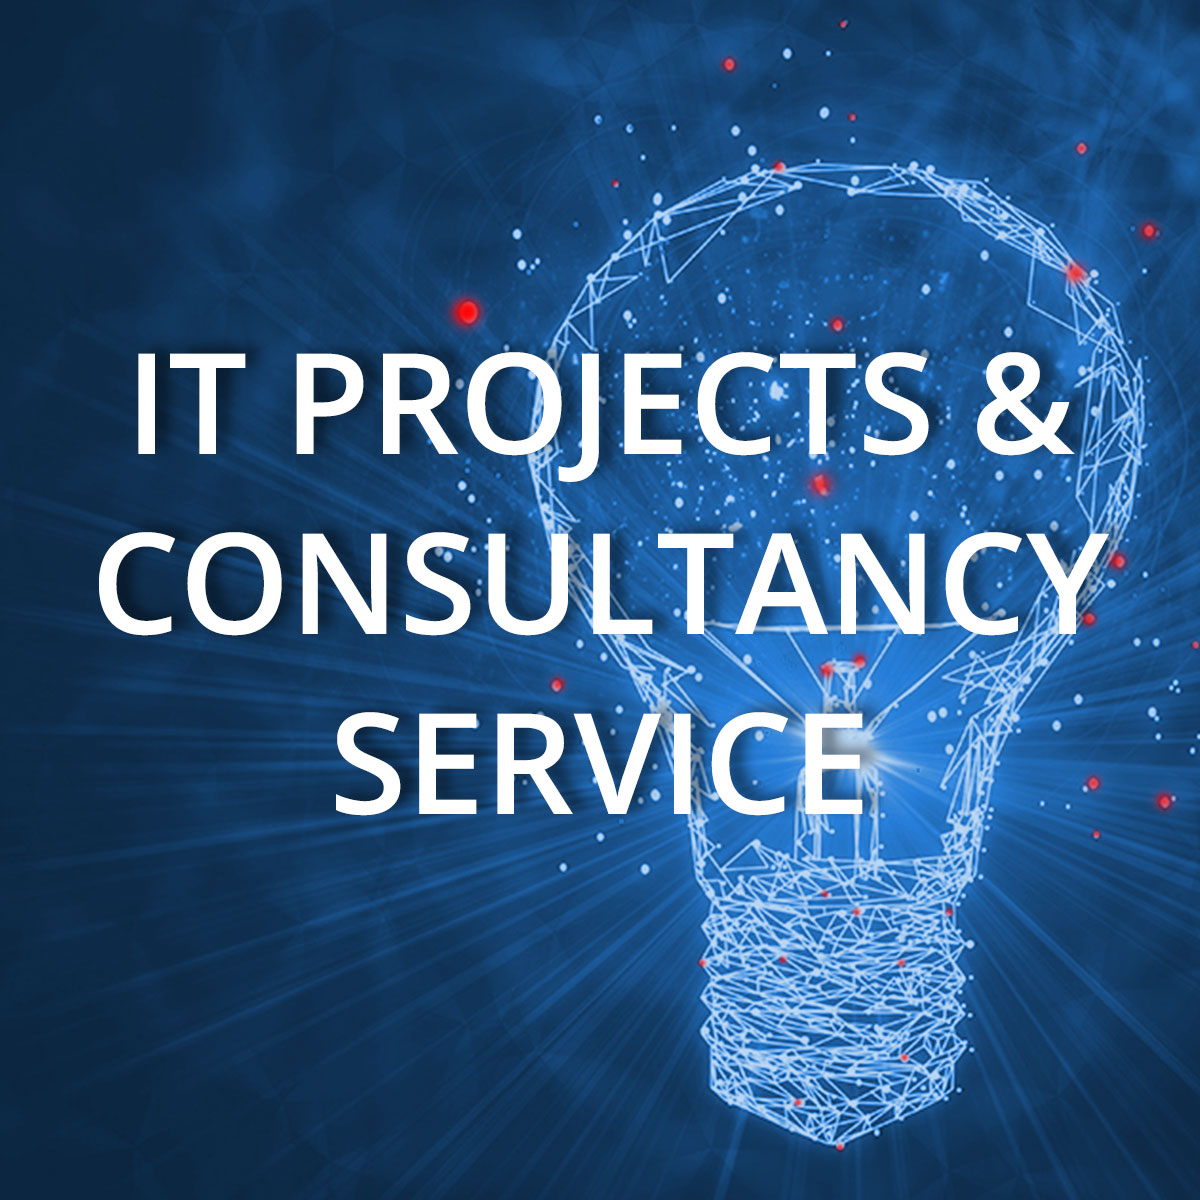 Interpro Technology IT Support - IT Projects and IT Consultancy Services - Portsmouth, Southampton, Fareham, Hampshire